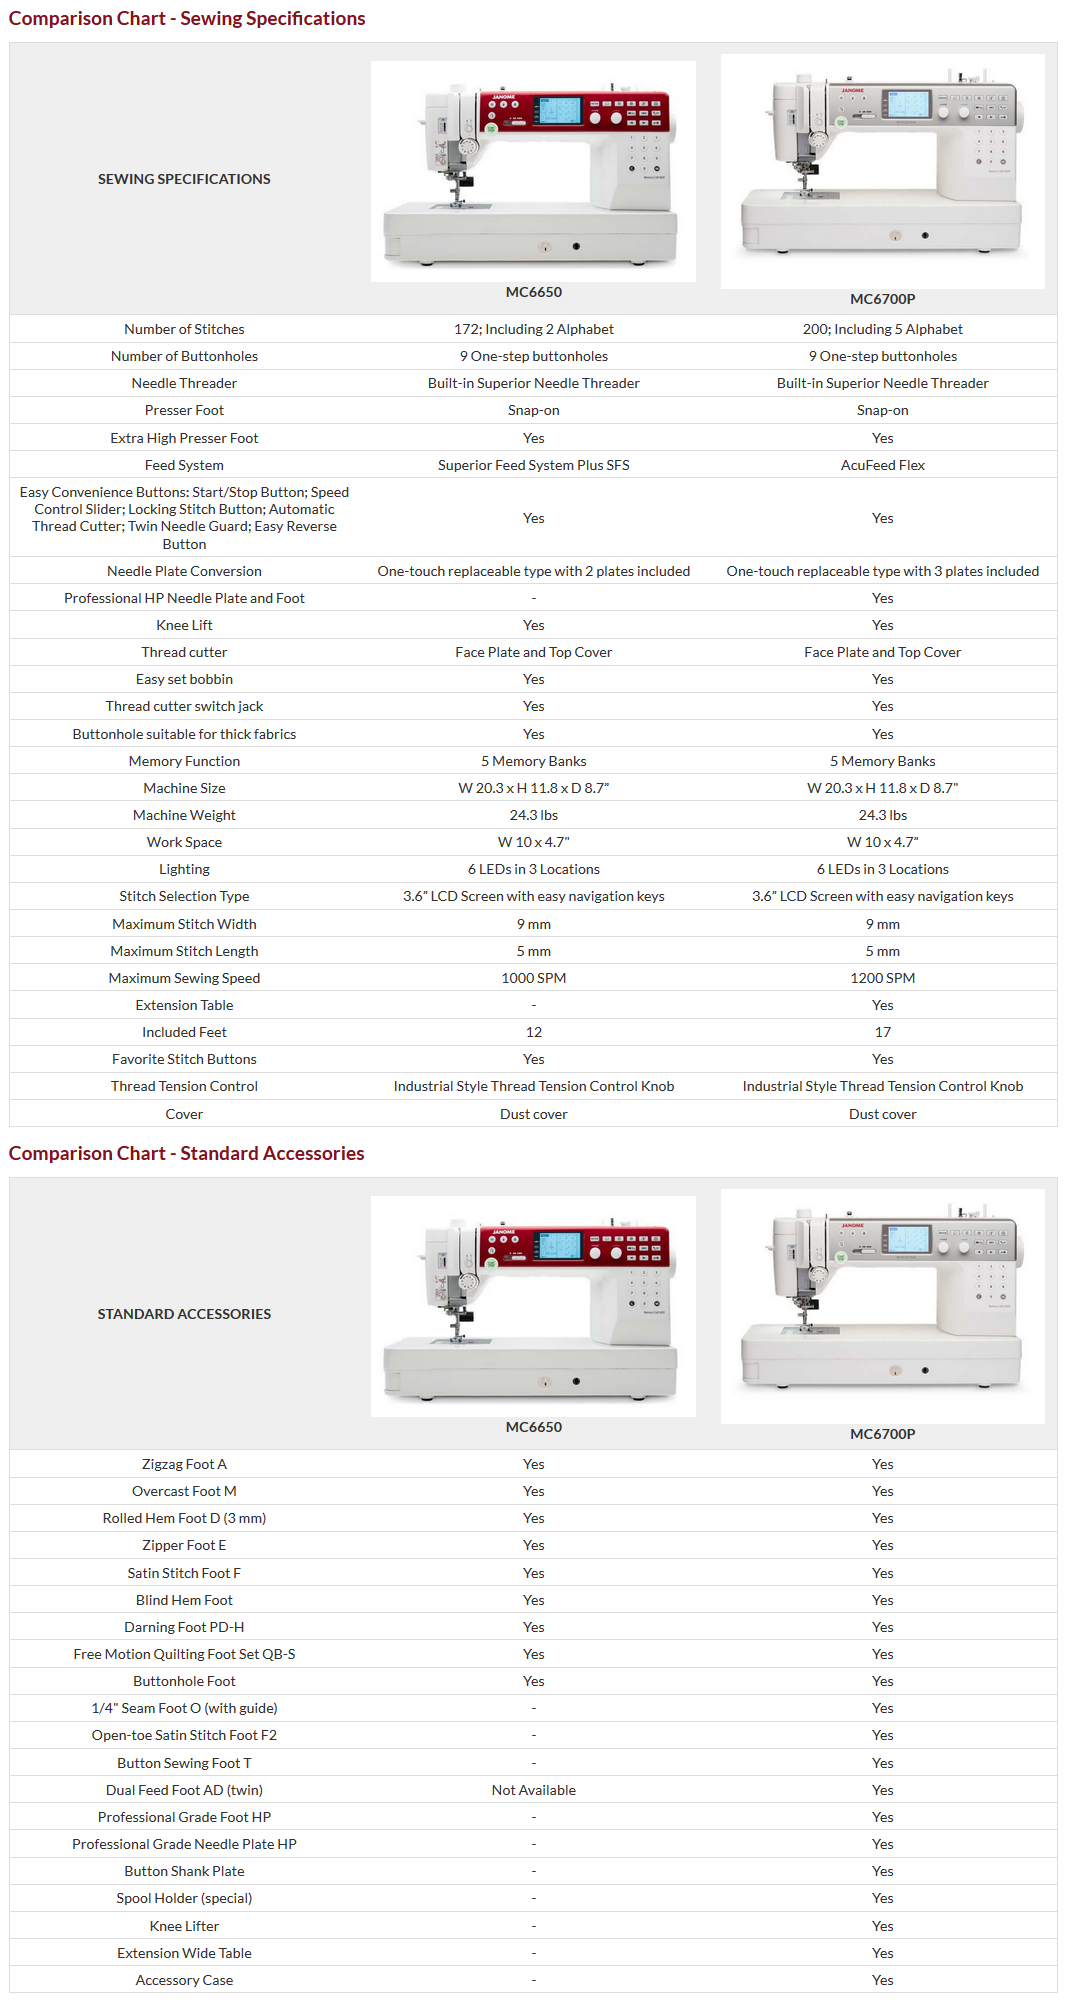 Janome 6650 Compared to 6700